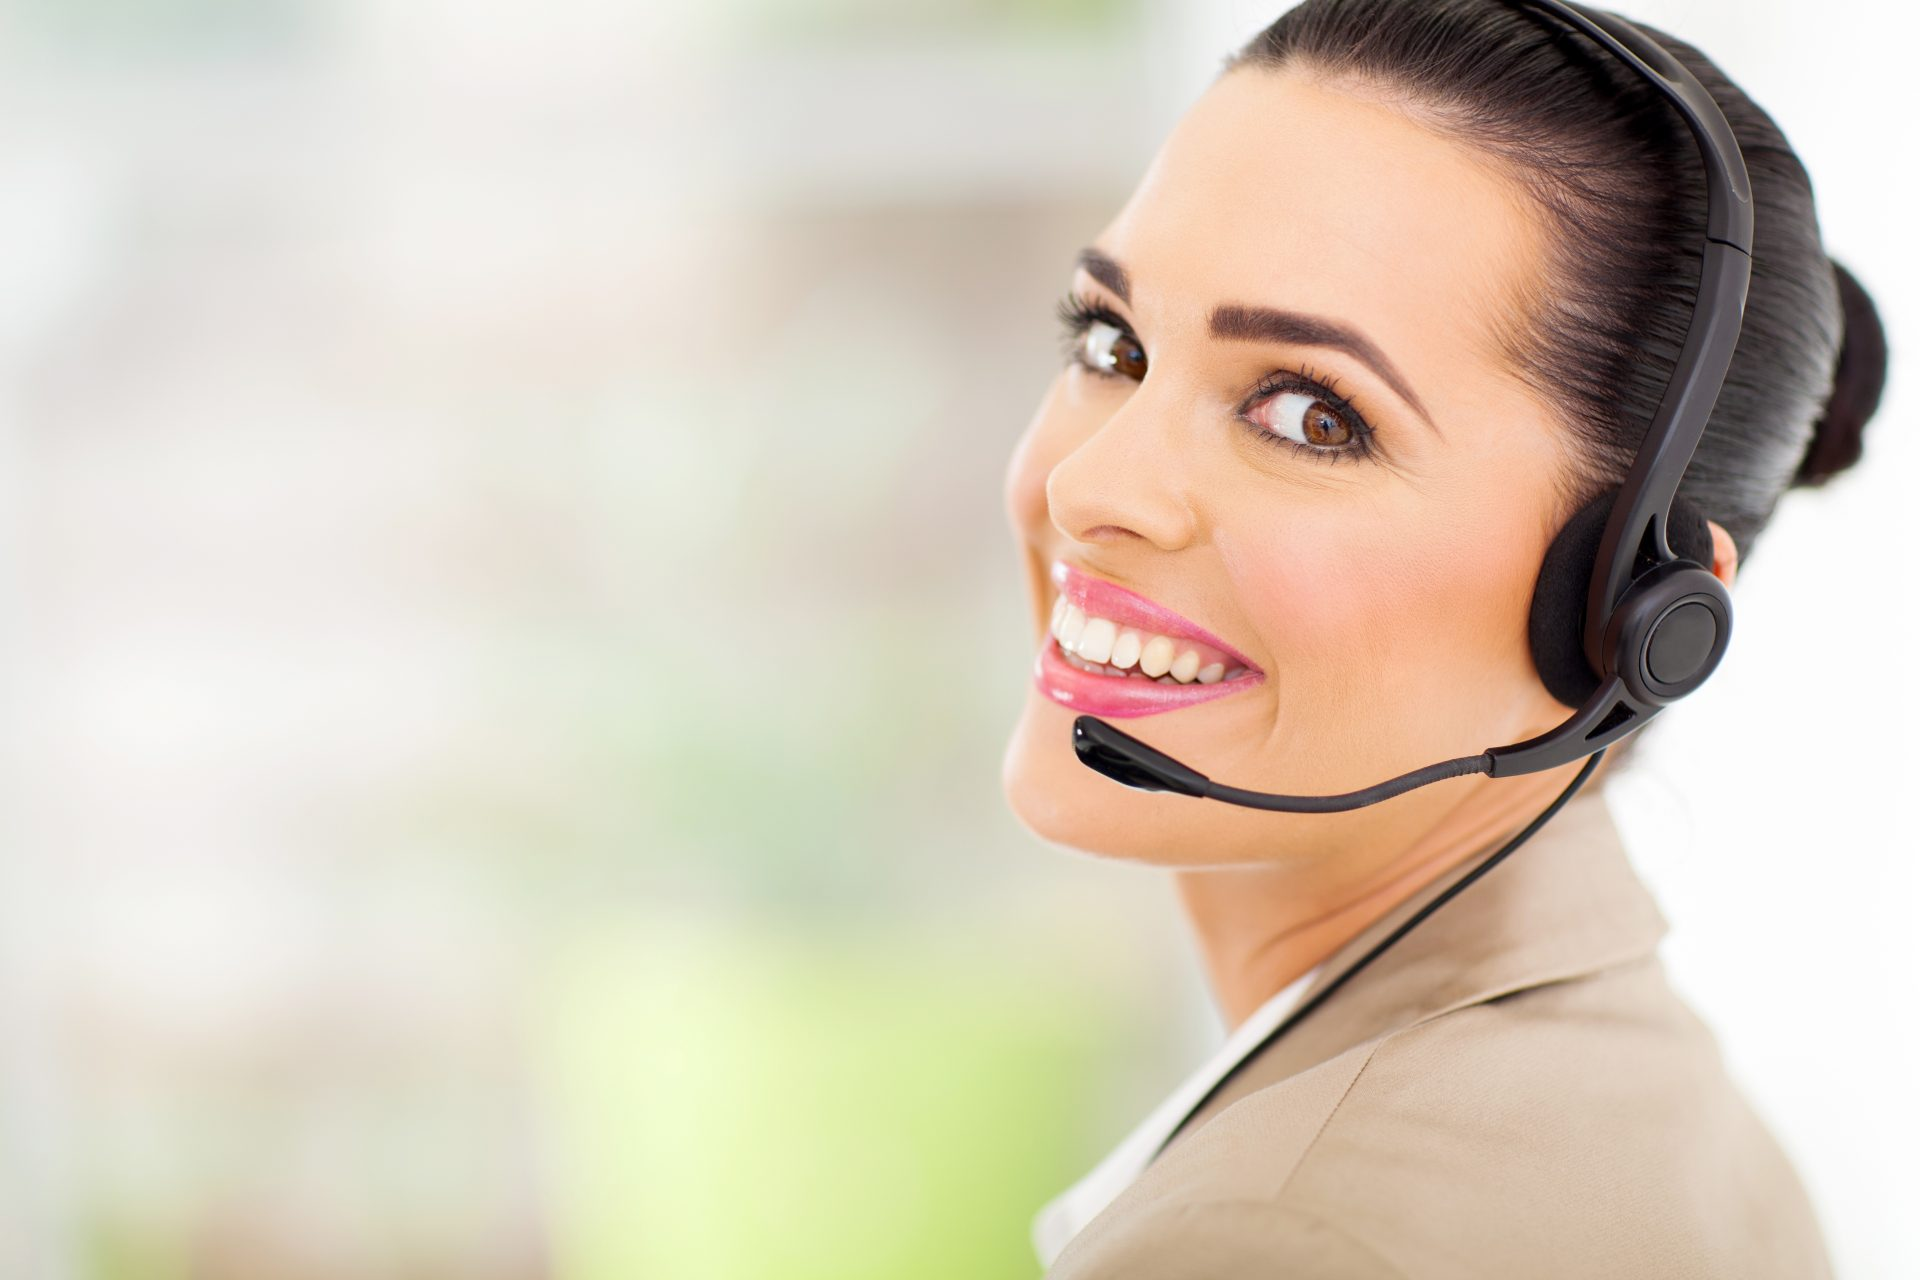 call answering service in Virginia - TASCO Message Centers